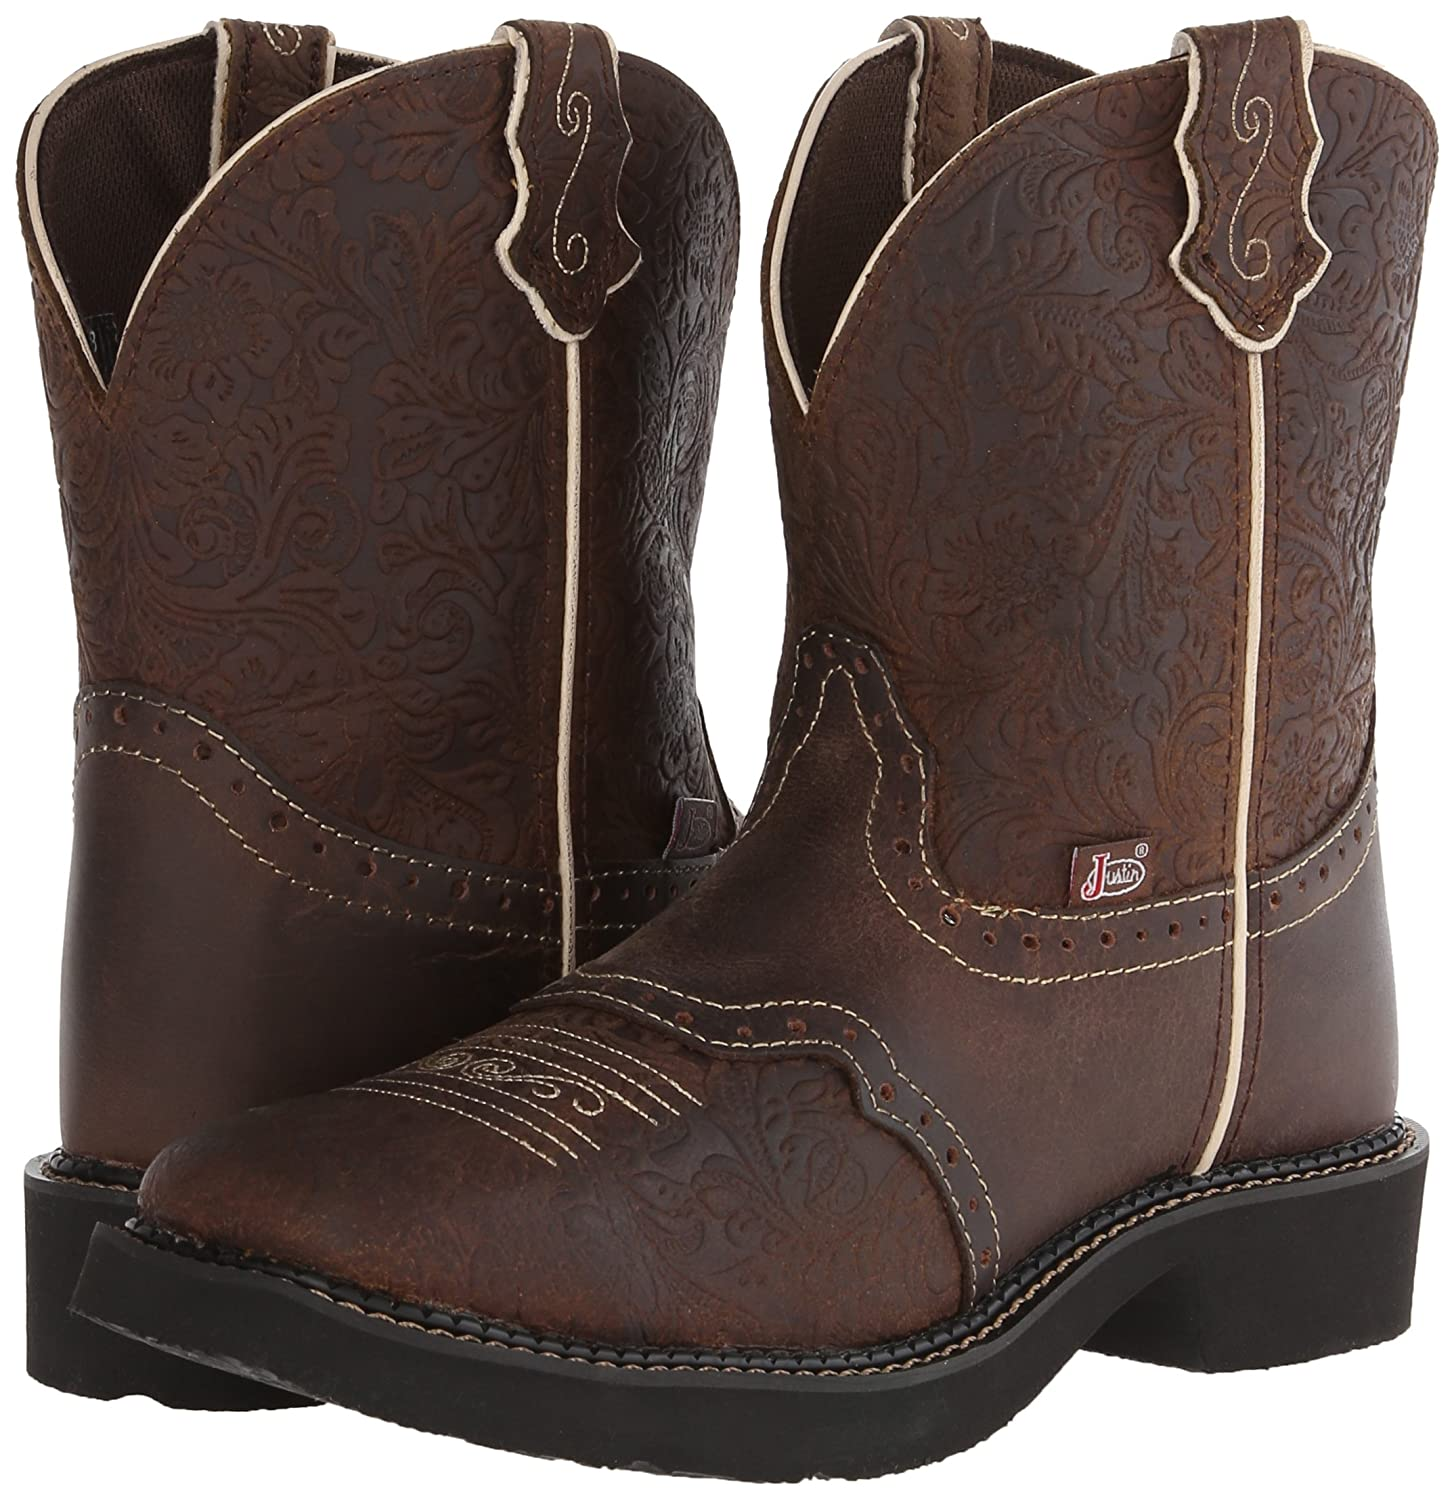 c4deeb210e6f3 ... Justin Justin Justin Boots Women s Gypsy Collection Western Boot  B00LCT60A2 8 B(M) US ...